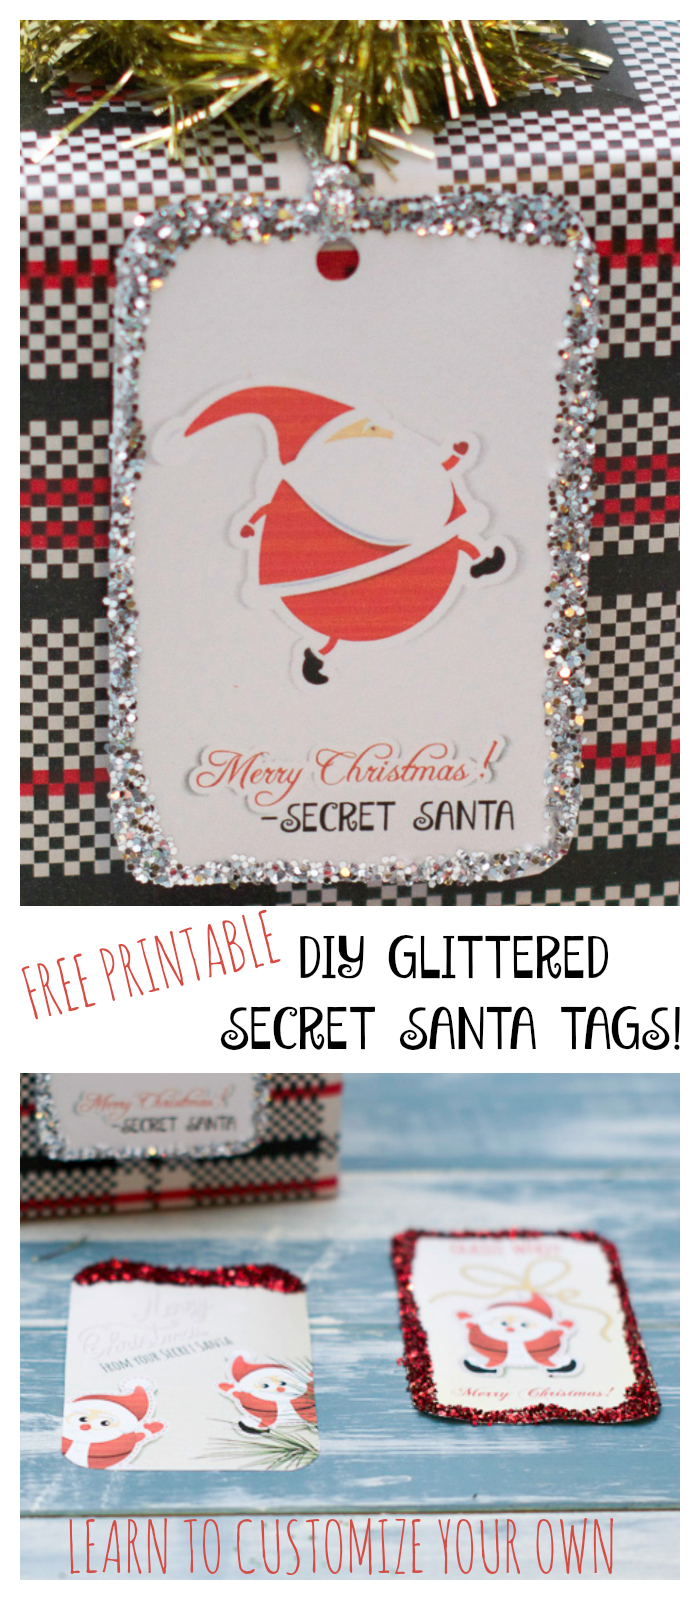 DIY glittered secret santa gift tags! Looking for a fun and cute way to tag your Secret Santa gifts?